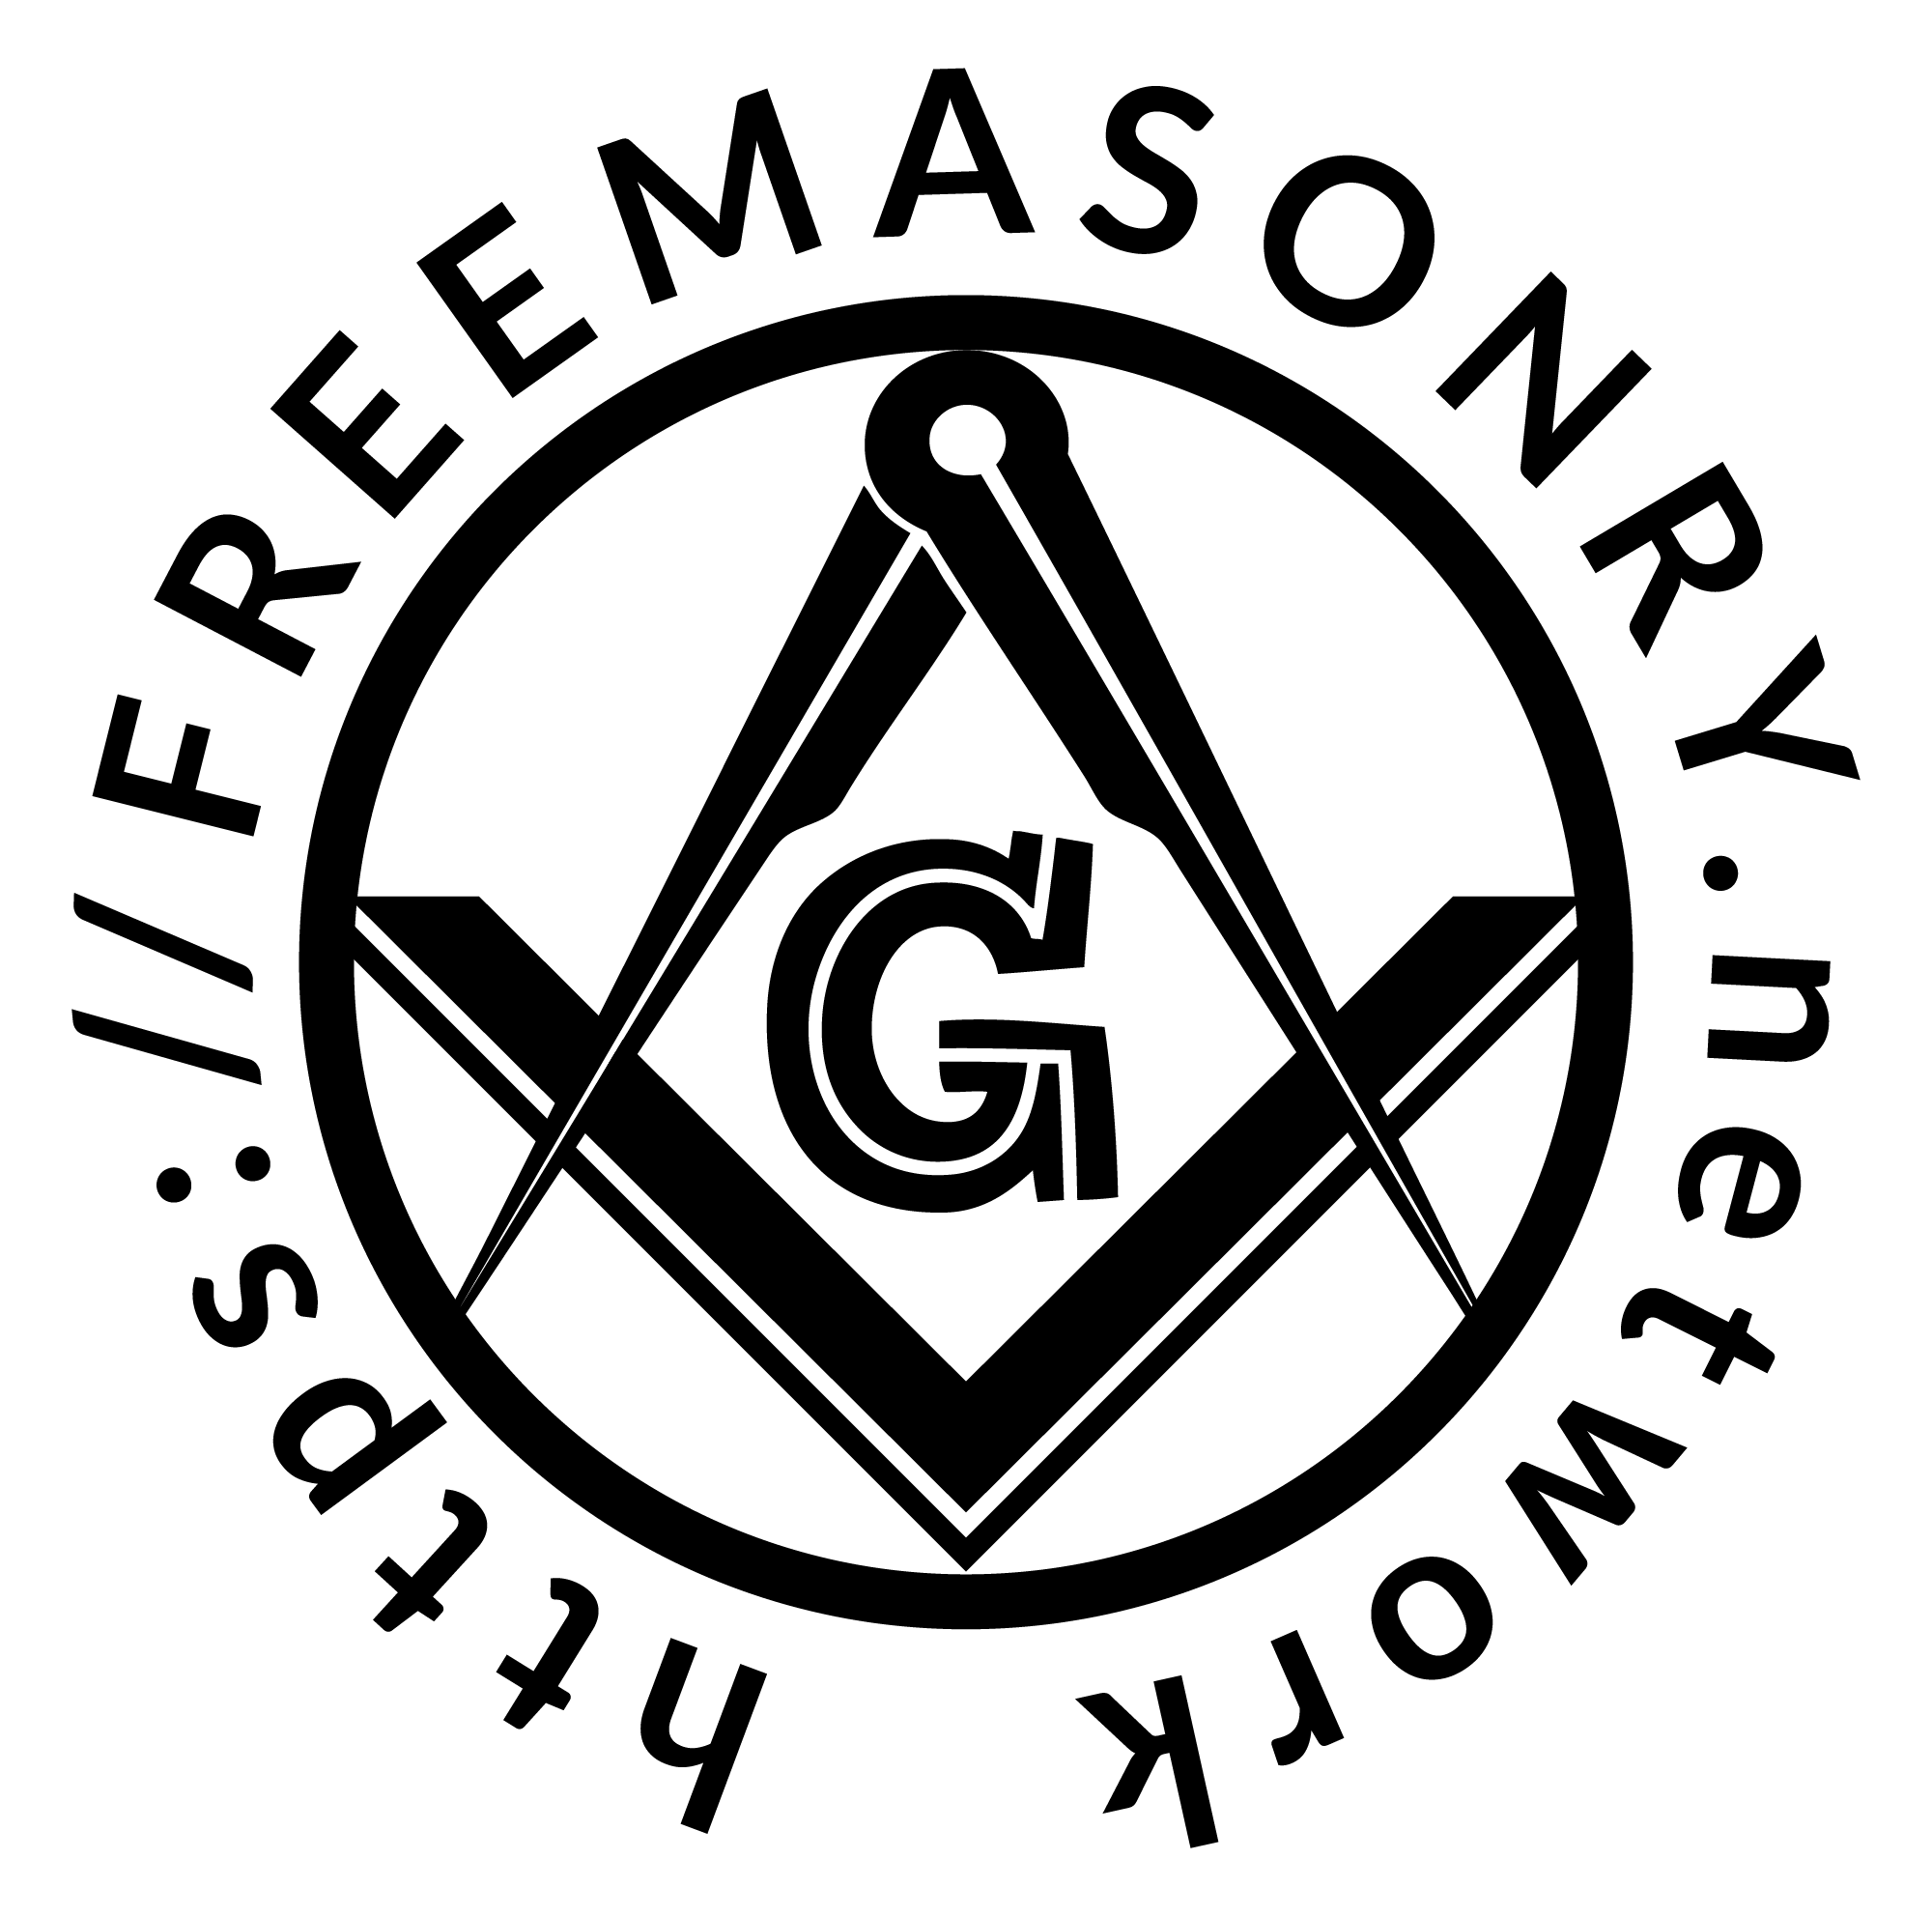 Others / Paramasonry / Quasi-Masonry / Similarities to Freemasonry